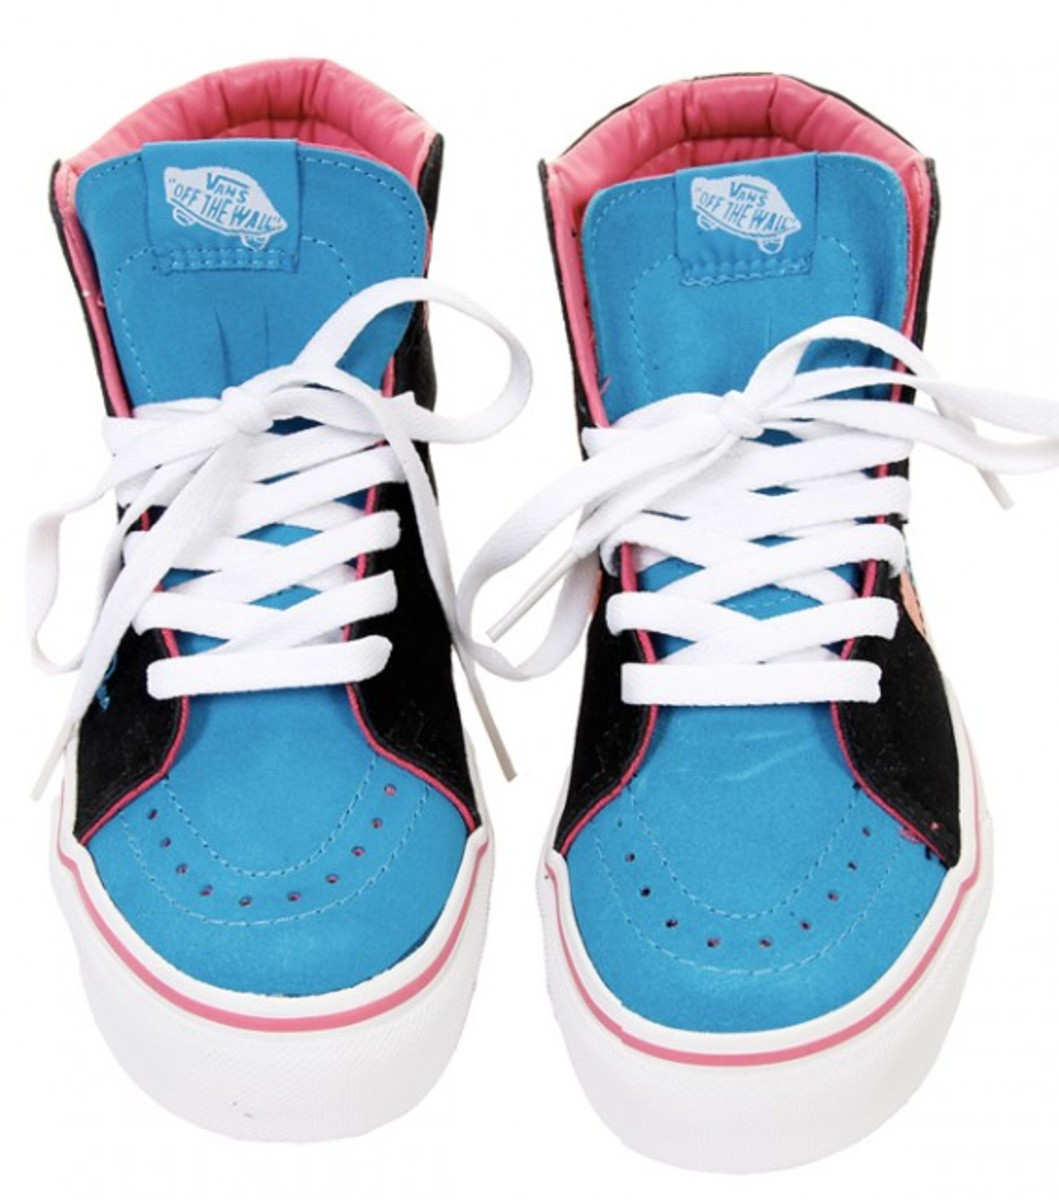 fa5da0411853ad VANS x Parra - Collaboration Collection